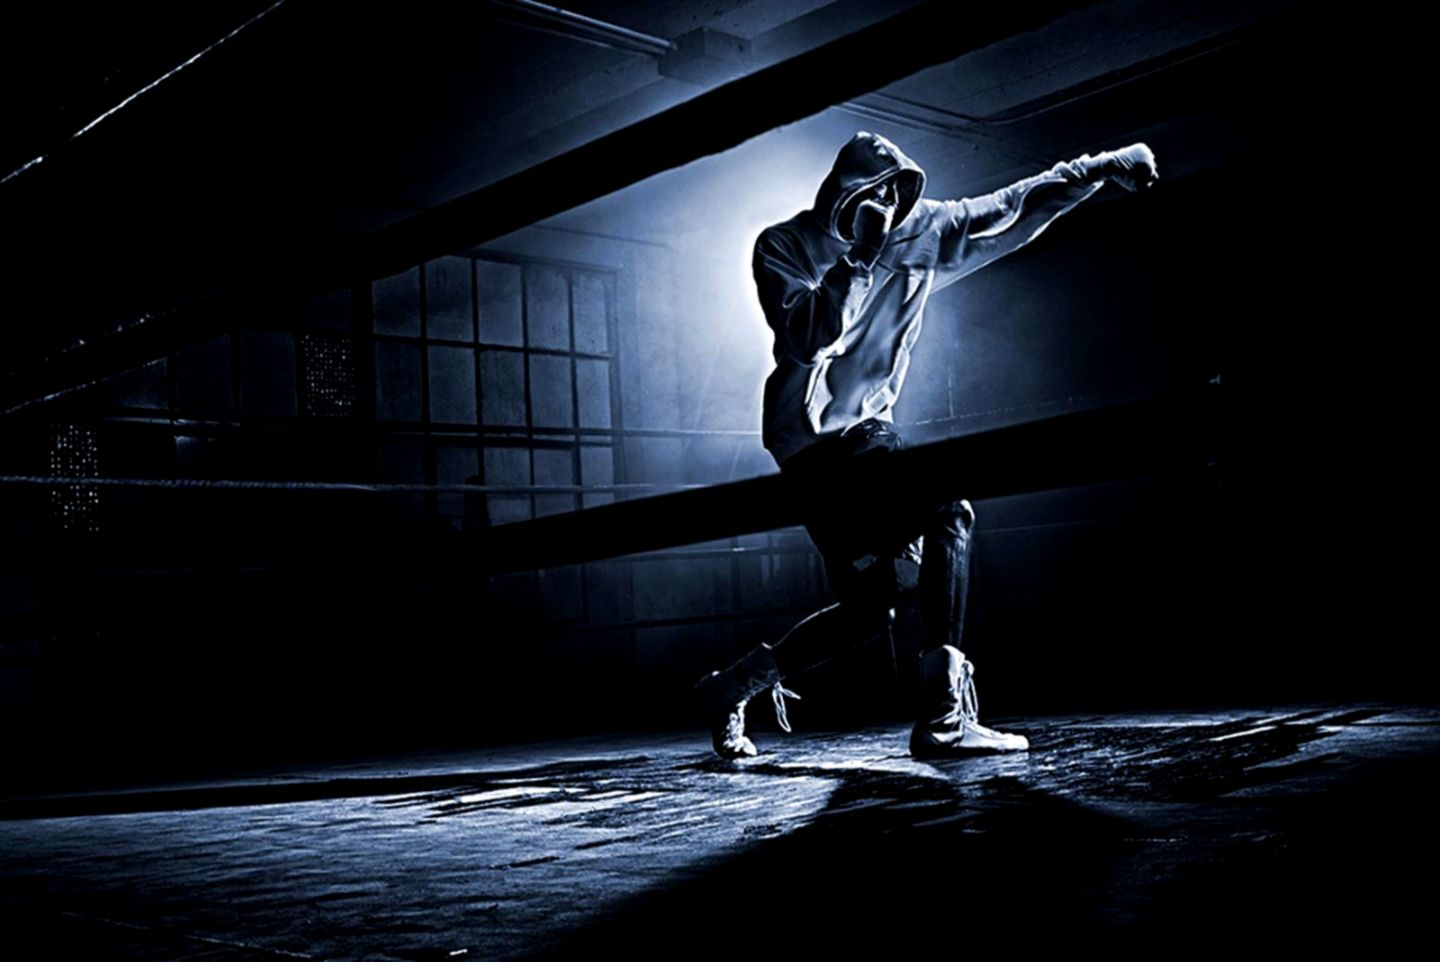 Sport Wallpaper Boxing: Boxing Sport Wallpaper Dekstop